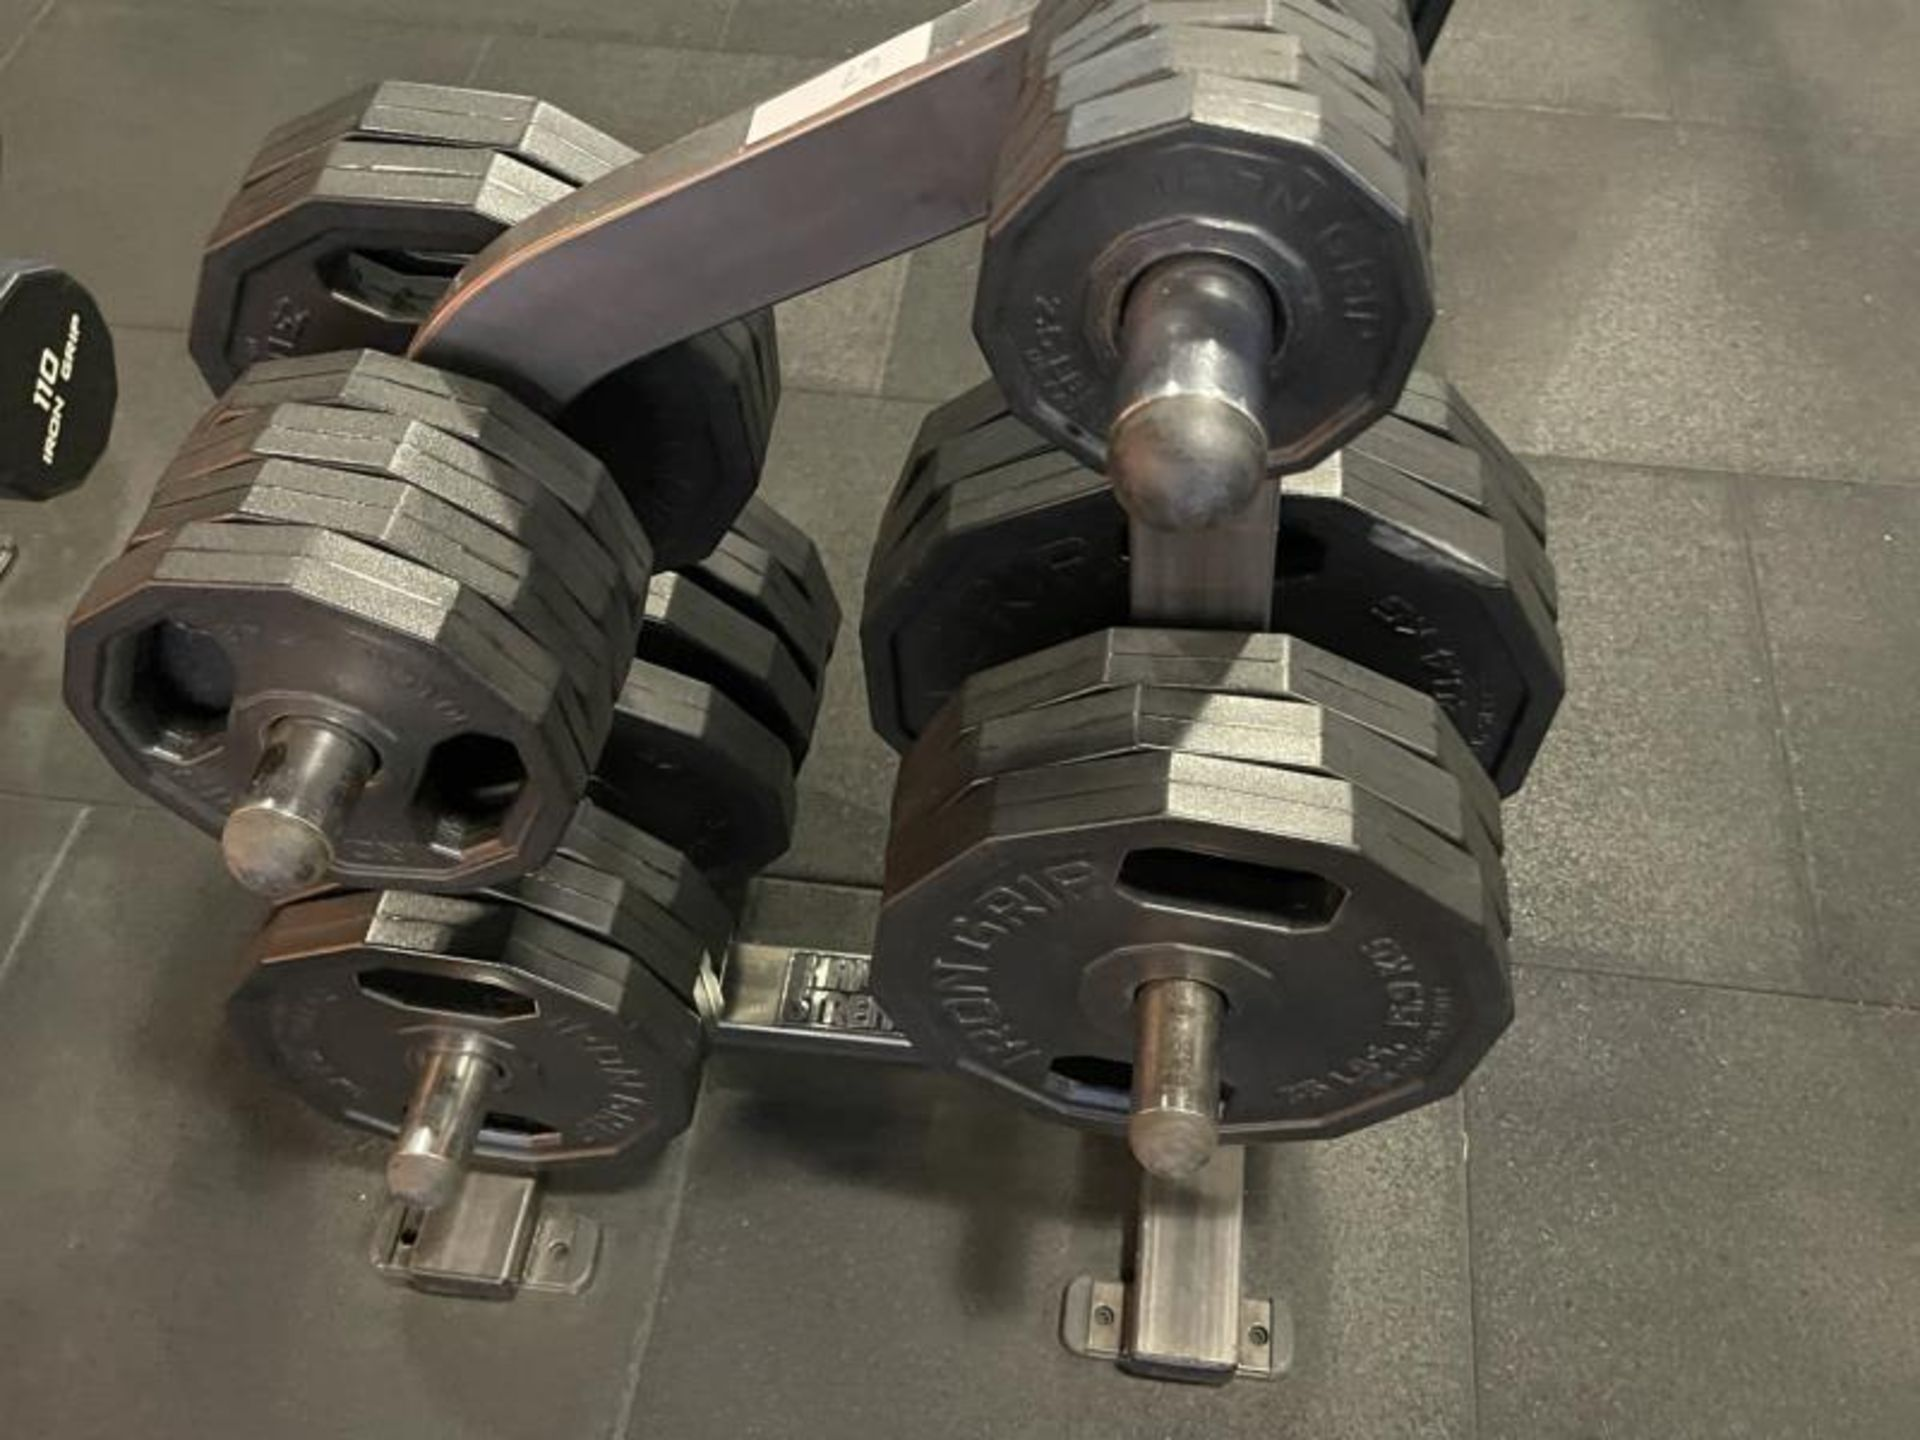 Hammer Strength Rack with 26 Iron Grip Weighted Plates - Image 5 of 5